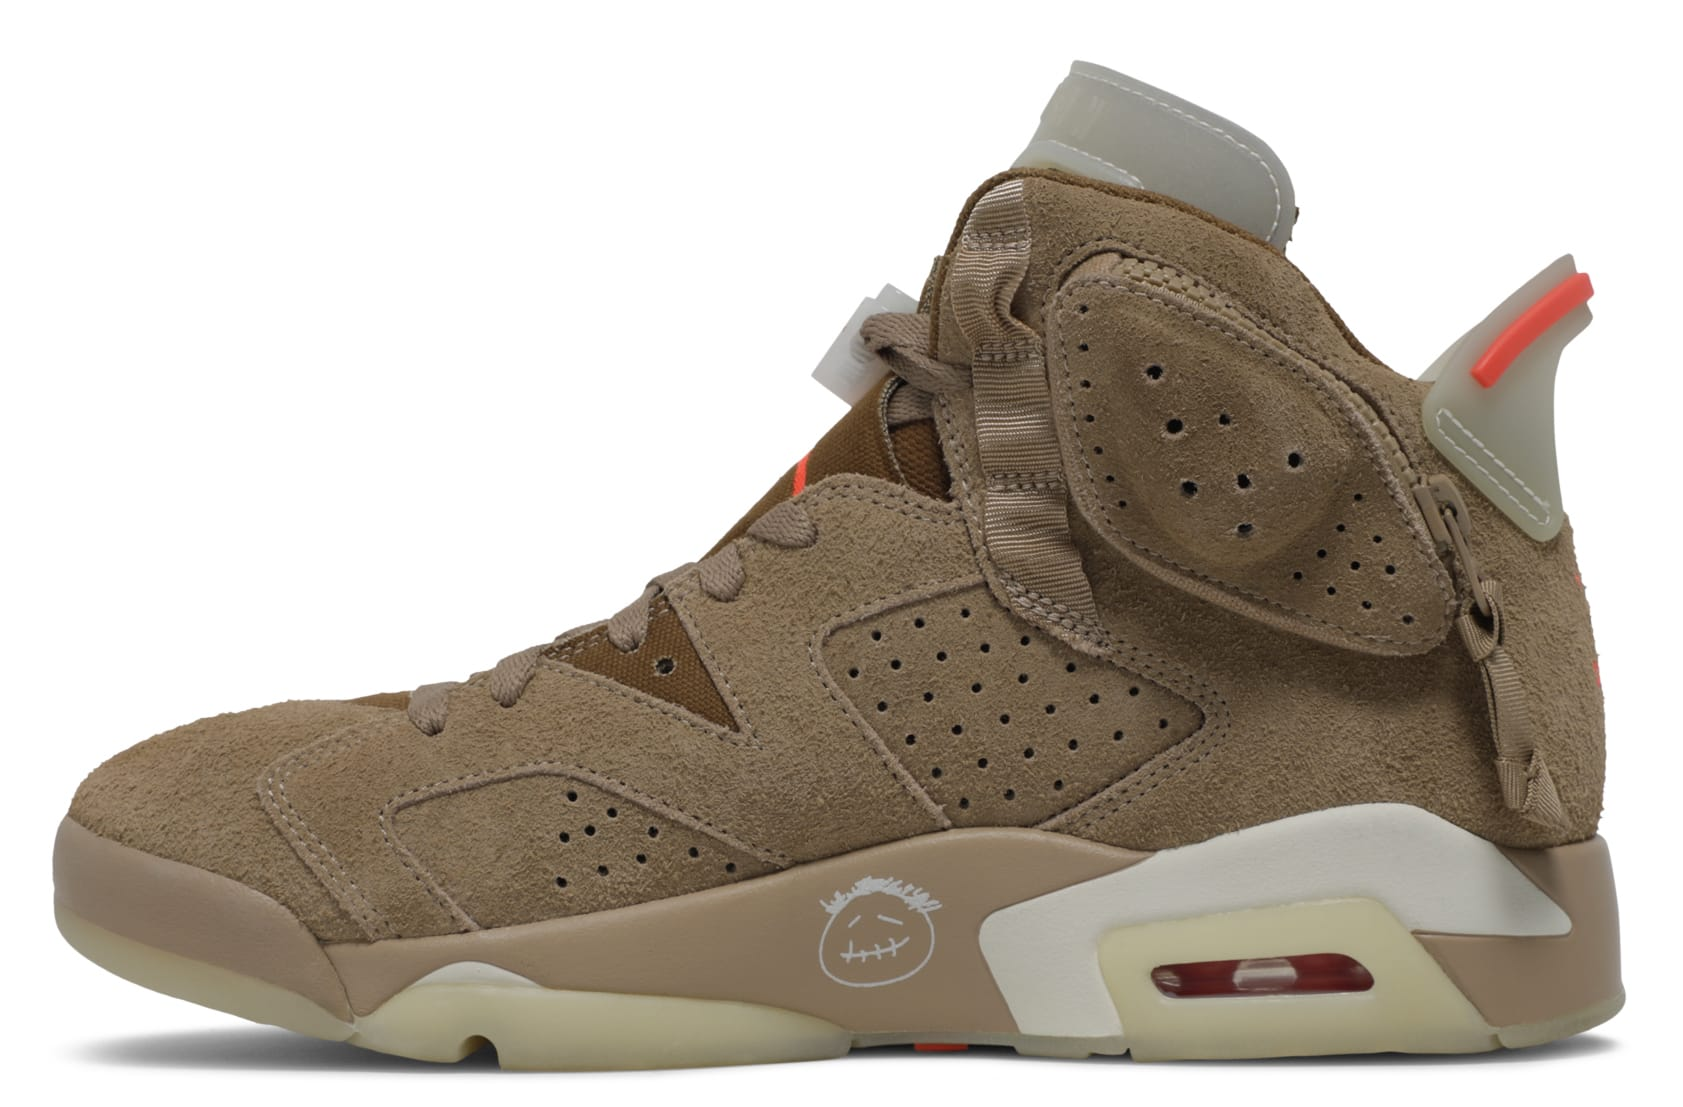 Travis Scott x Air Jordan 6 VI British Khaki Release Date DH0690-200 Medial